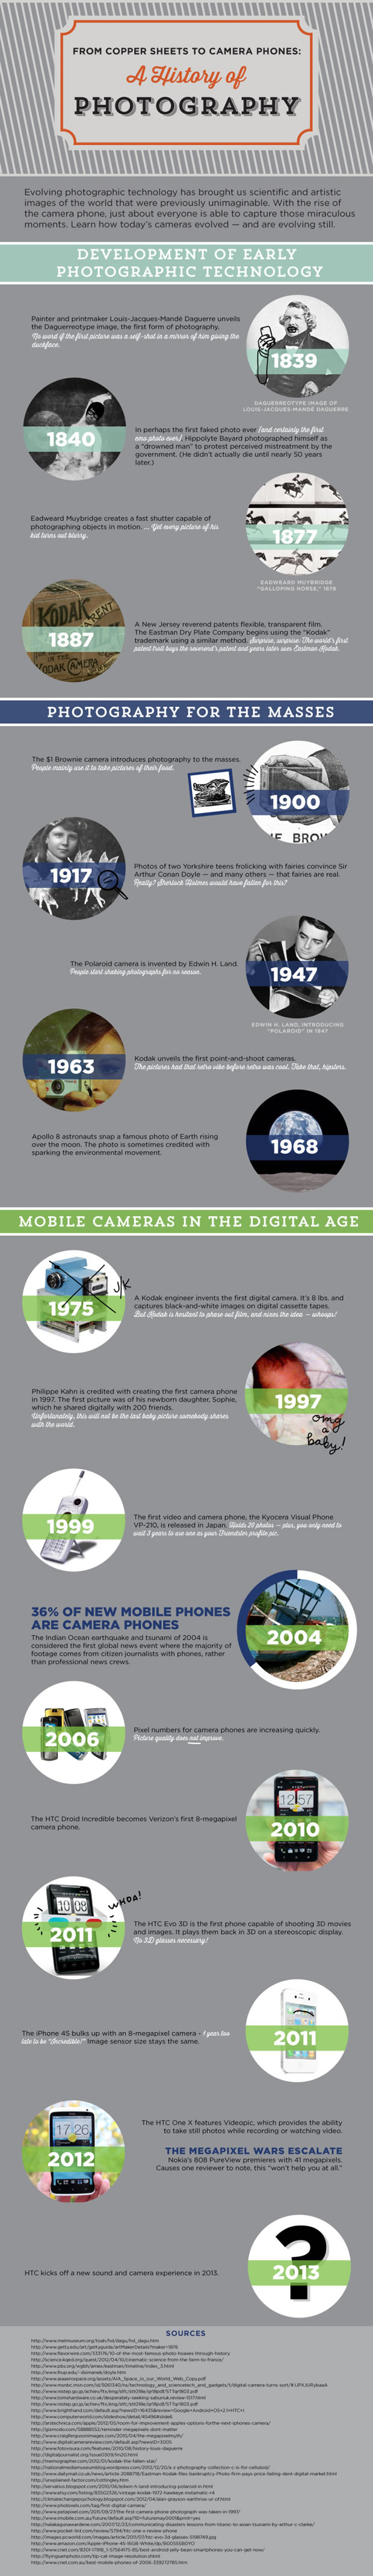 htc-camera-infographic-ultrapixel